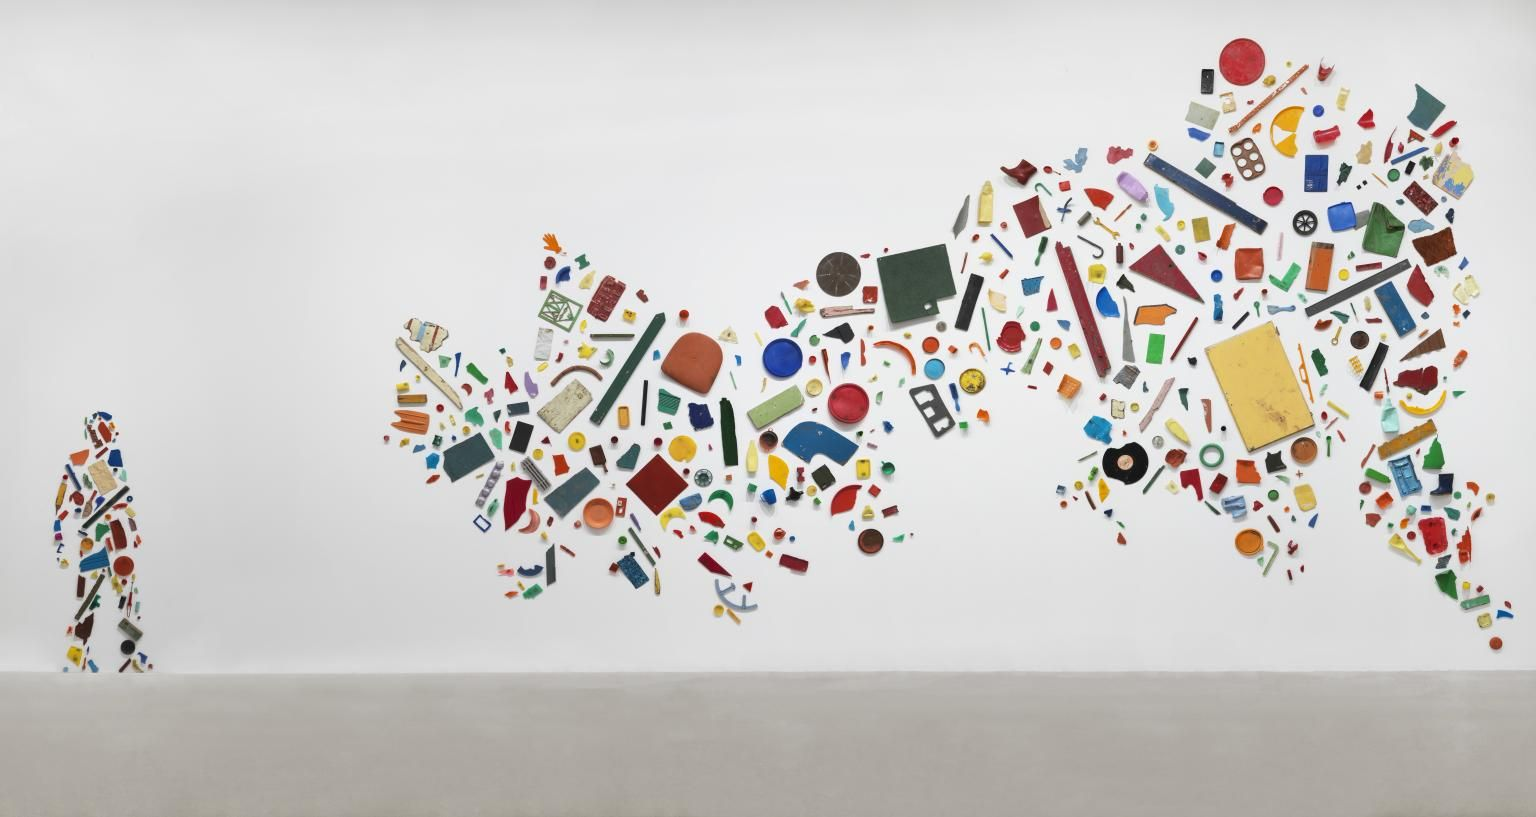 Tony Cragg, 'Britain Seen from the North' 1981 | Artist